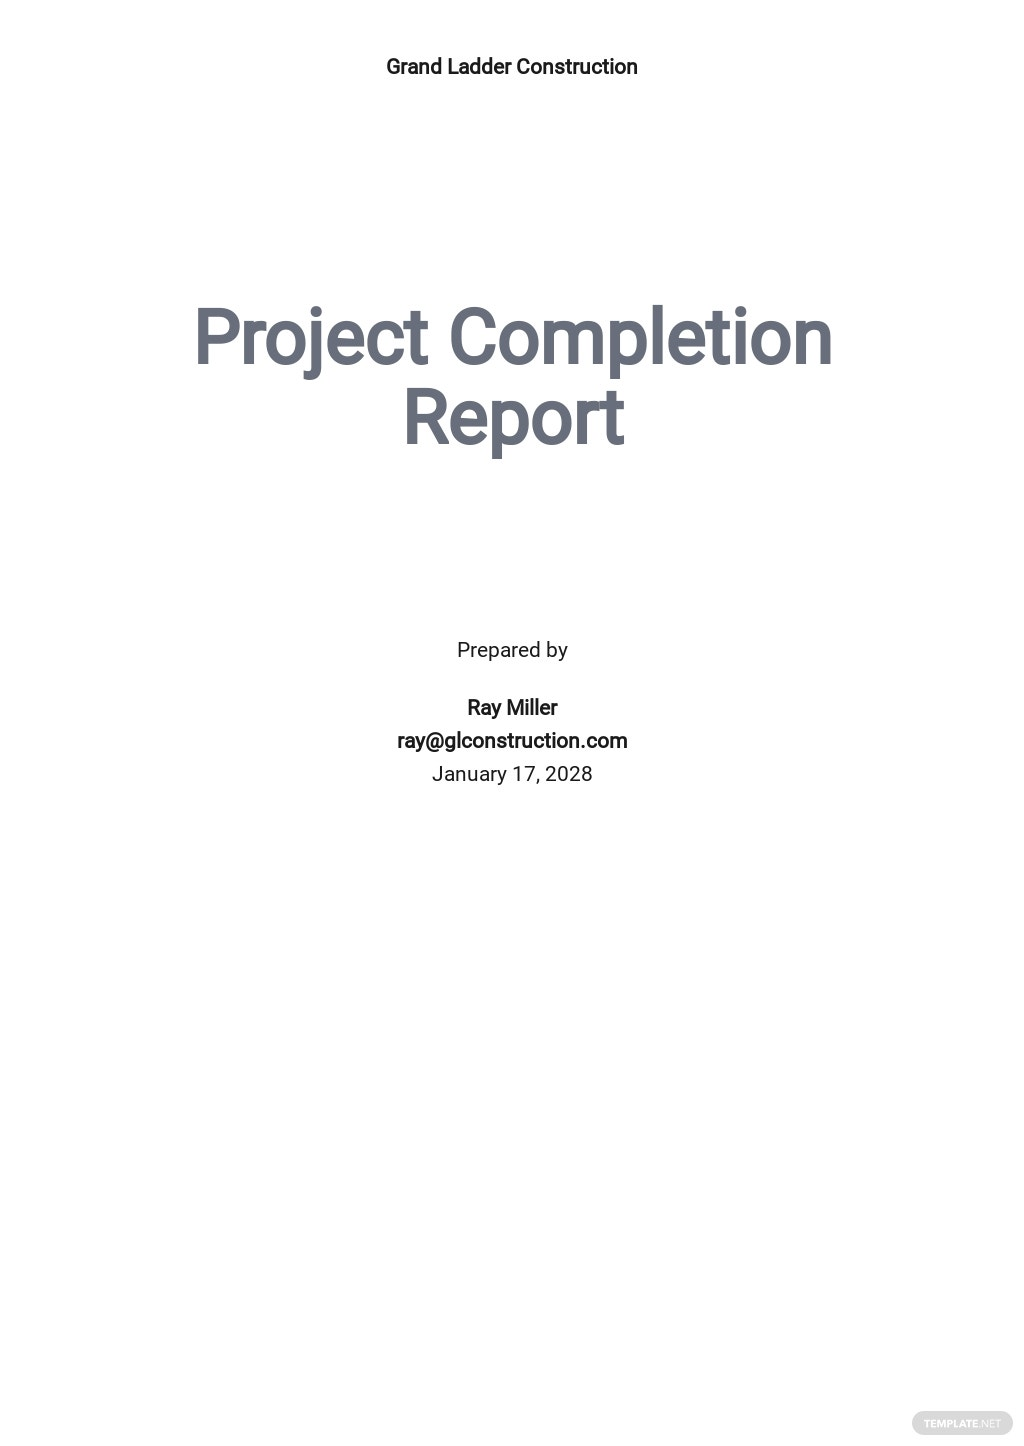 Project Completion Report Template